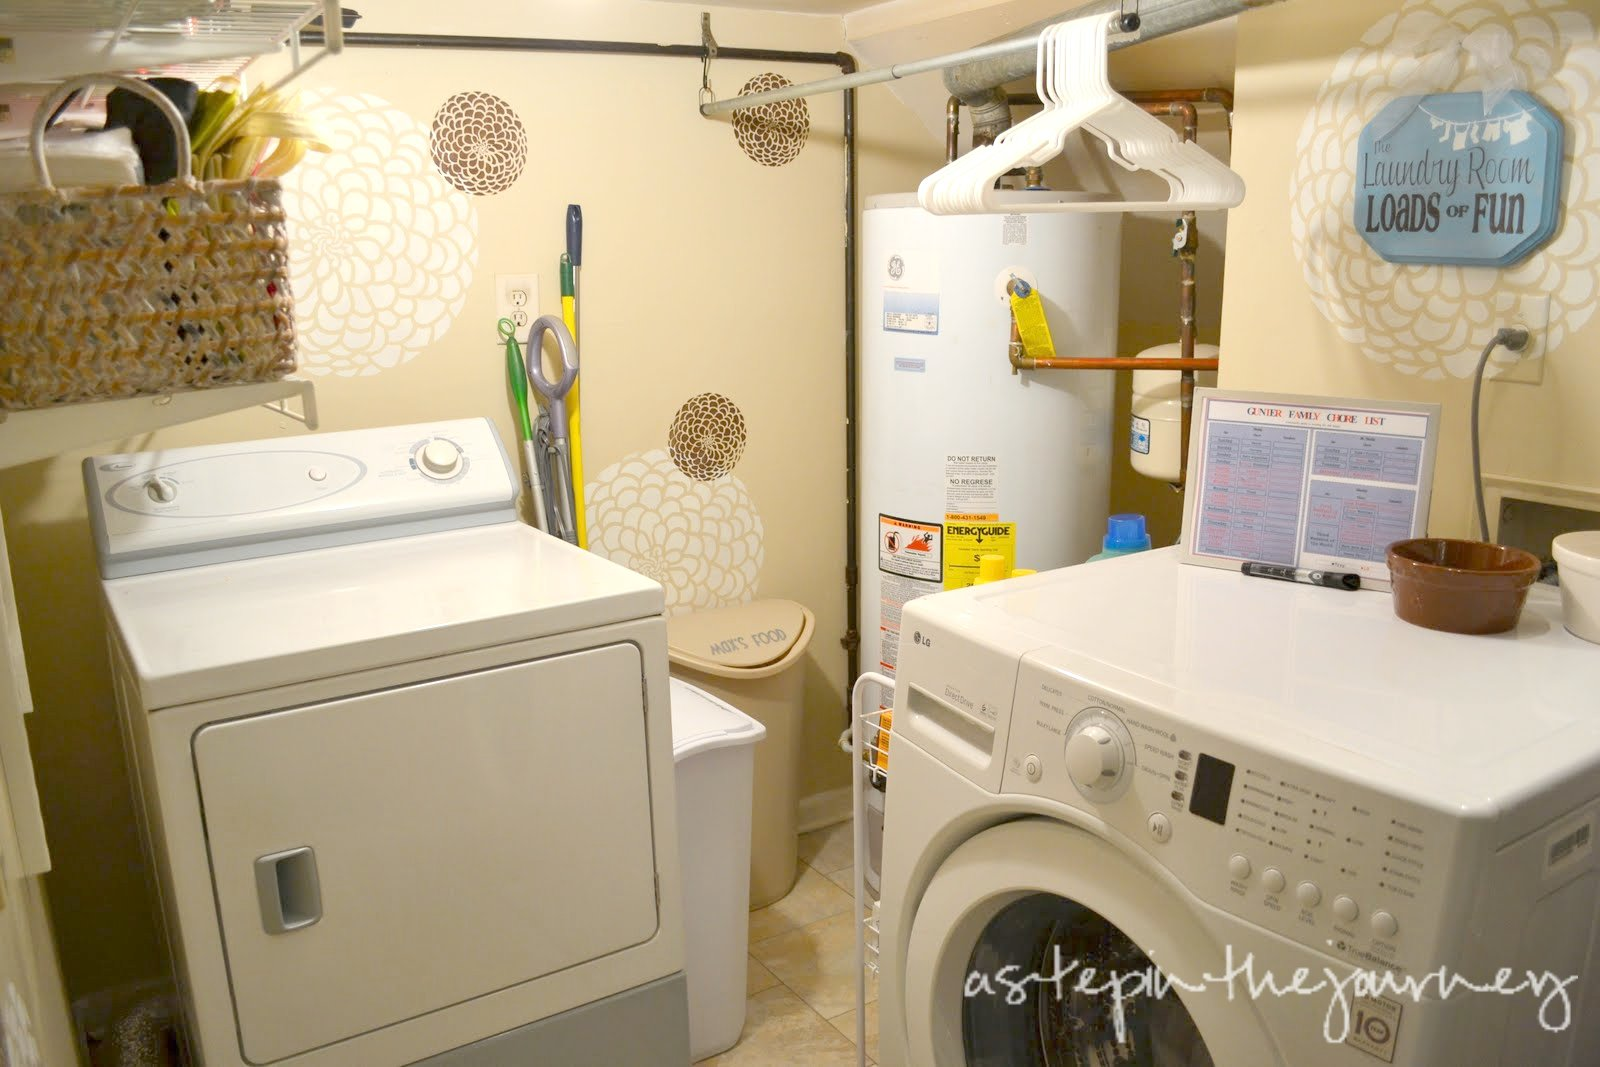 Laundry – Loads of Fun on bathroom with tile shower designs, bathroom with tile floor designs, kitchen room designs, bathroom with walk in closet designs, bathroom with fireplace designs, bathroom laundry room layout, bathroom with outdoor kitchen designs, bathroom with marble countertops, bathroom with jacuzzi designs,